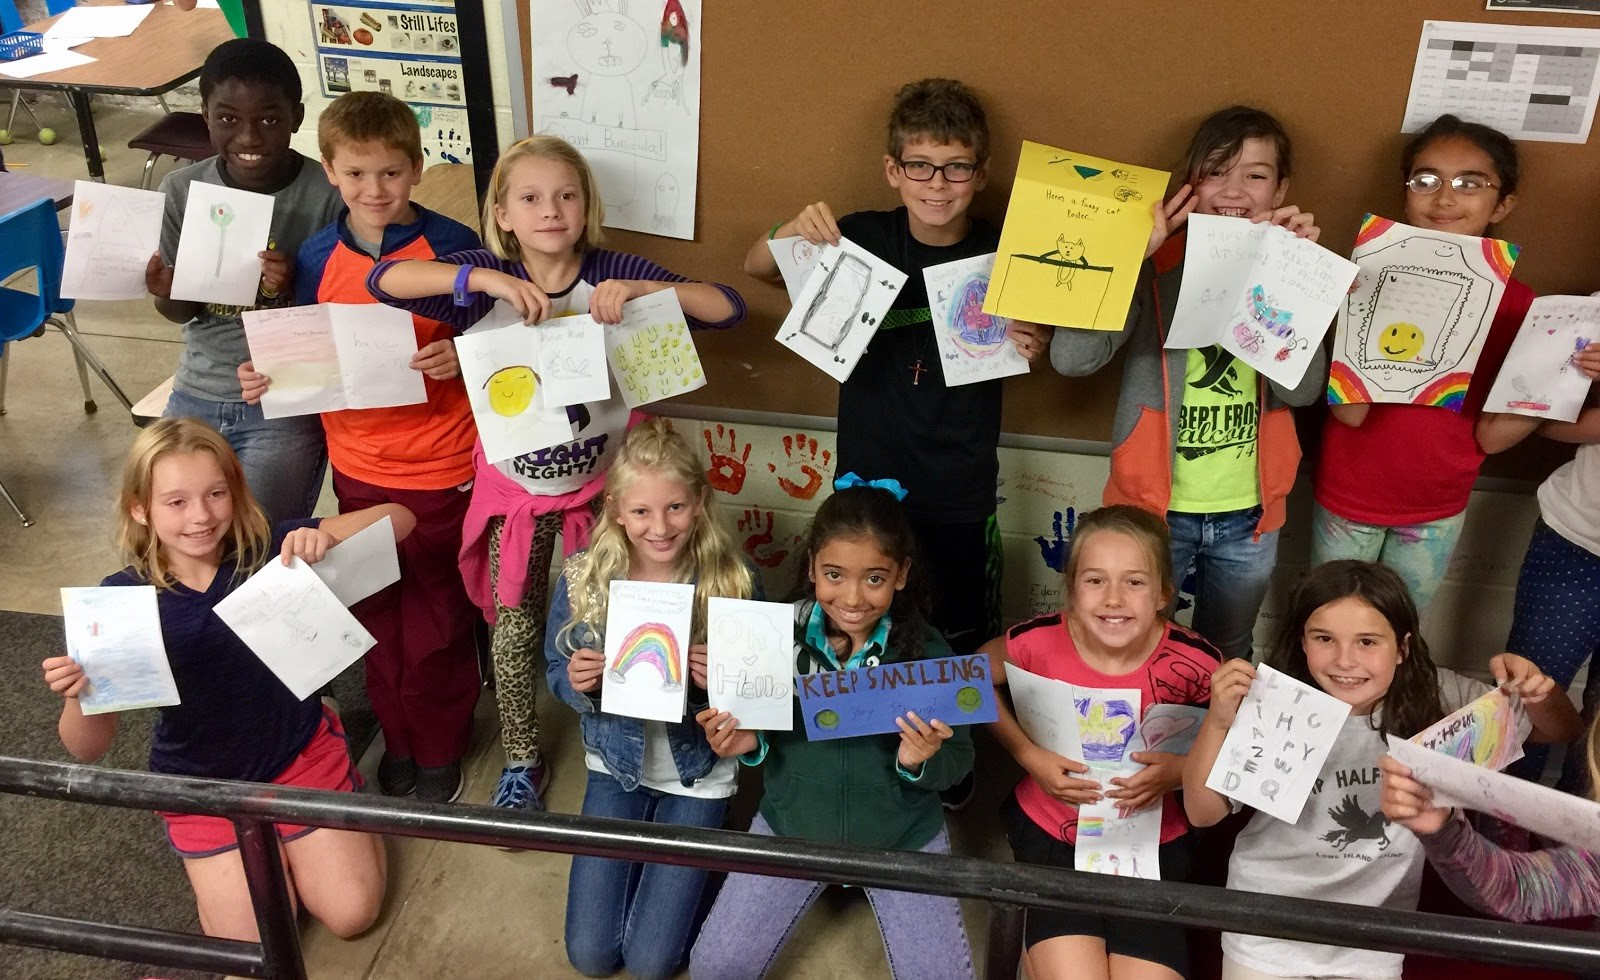 Emerson students display cards they made